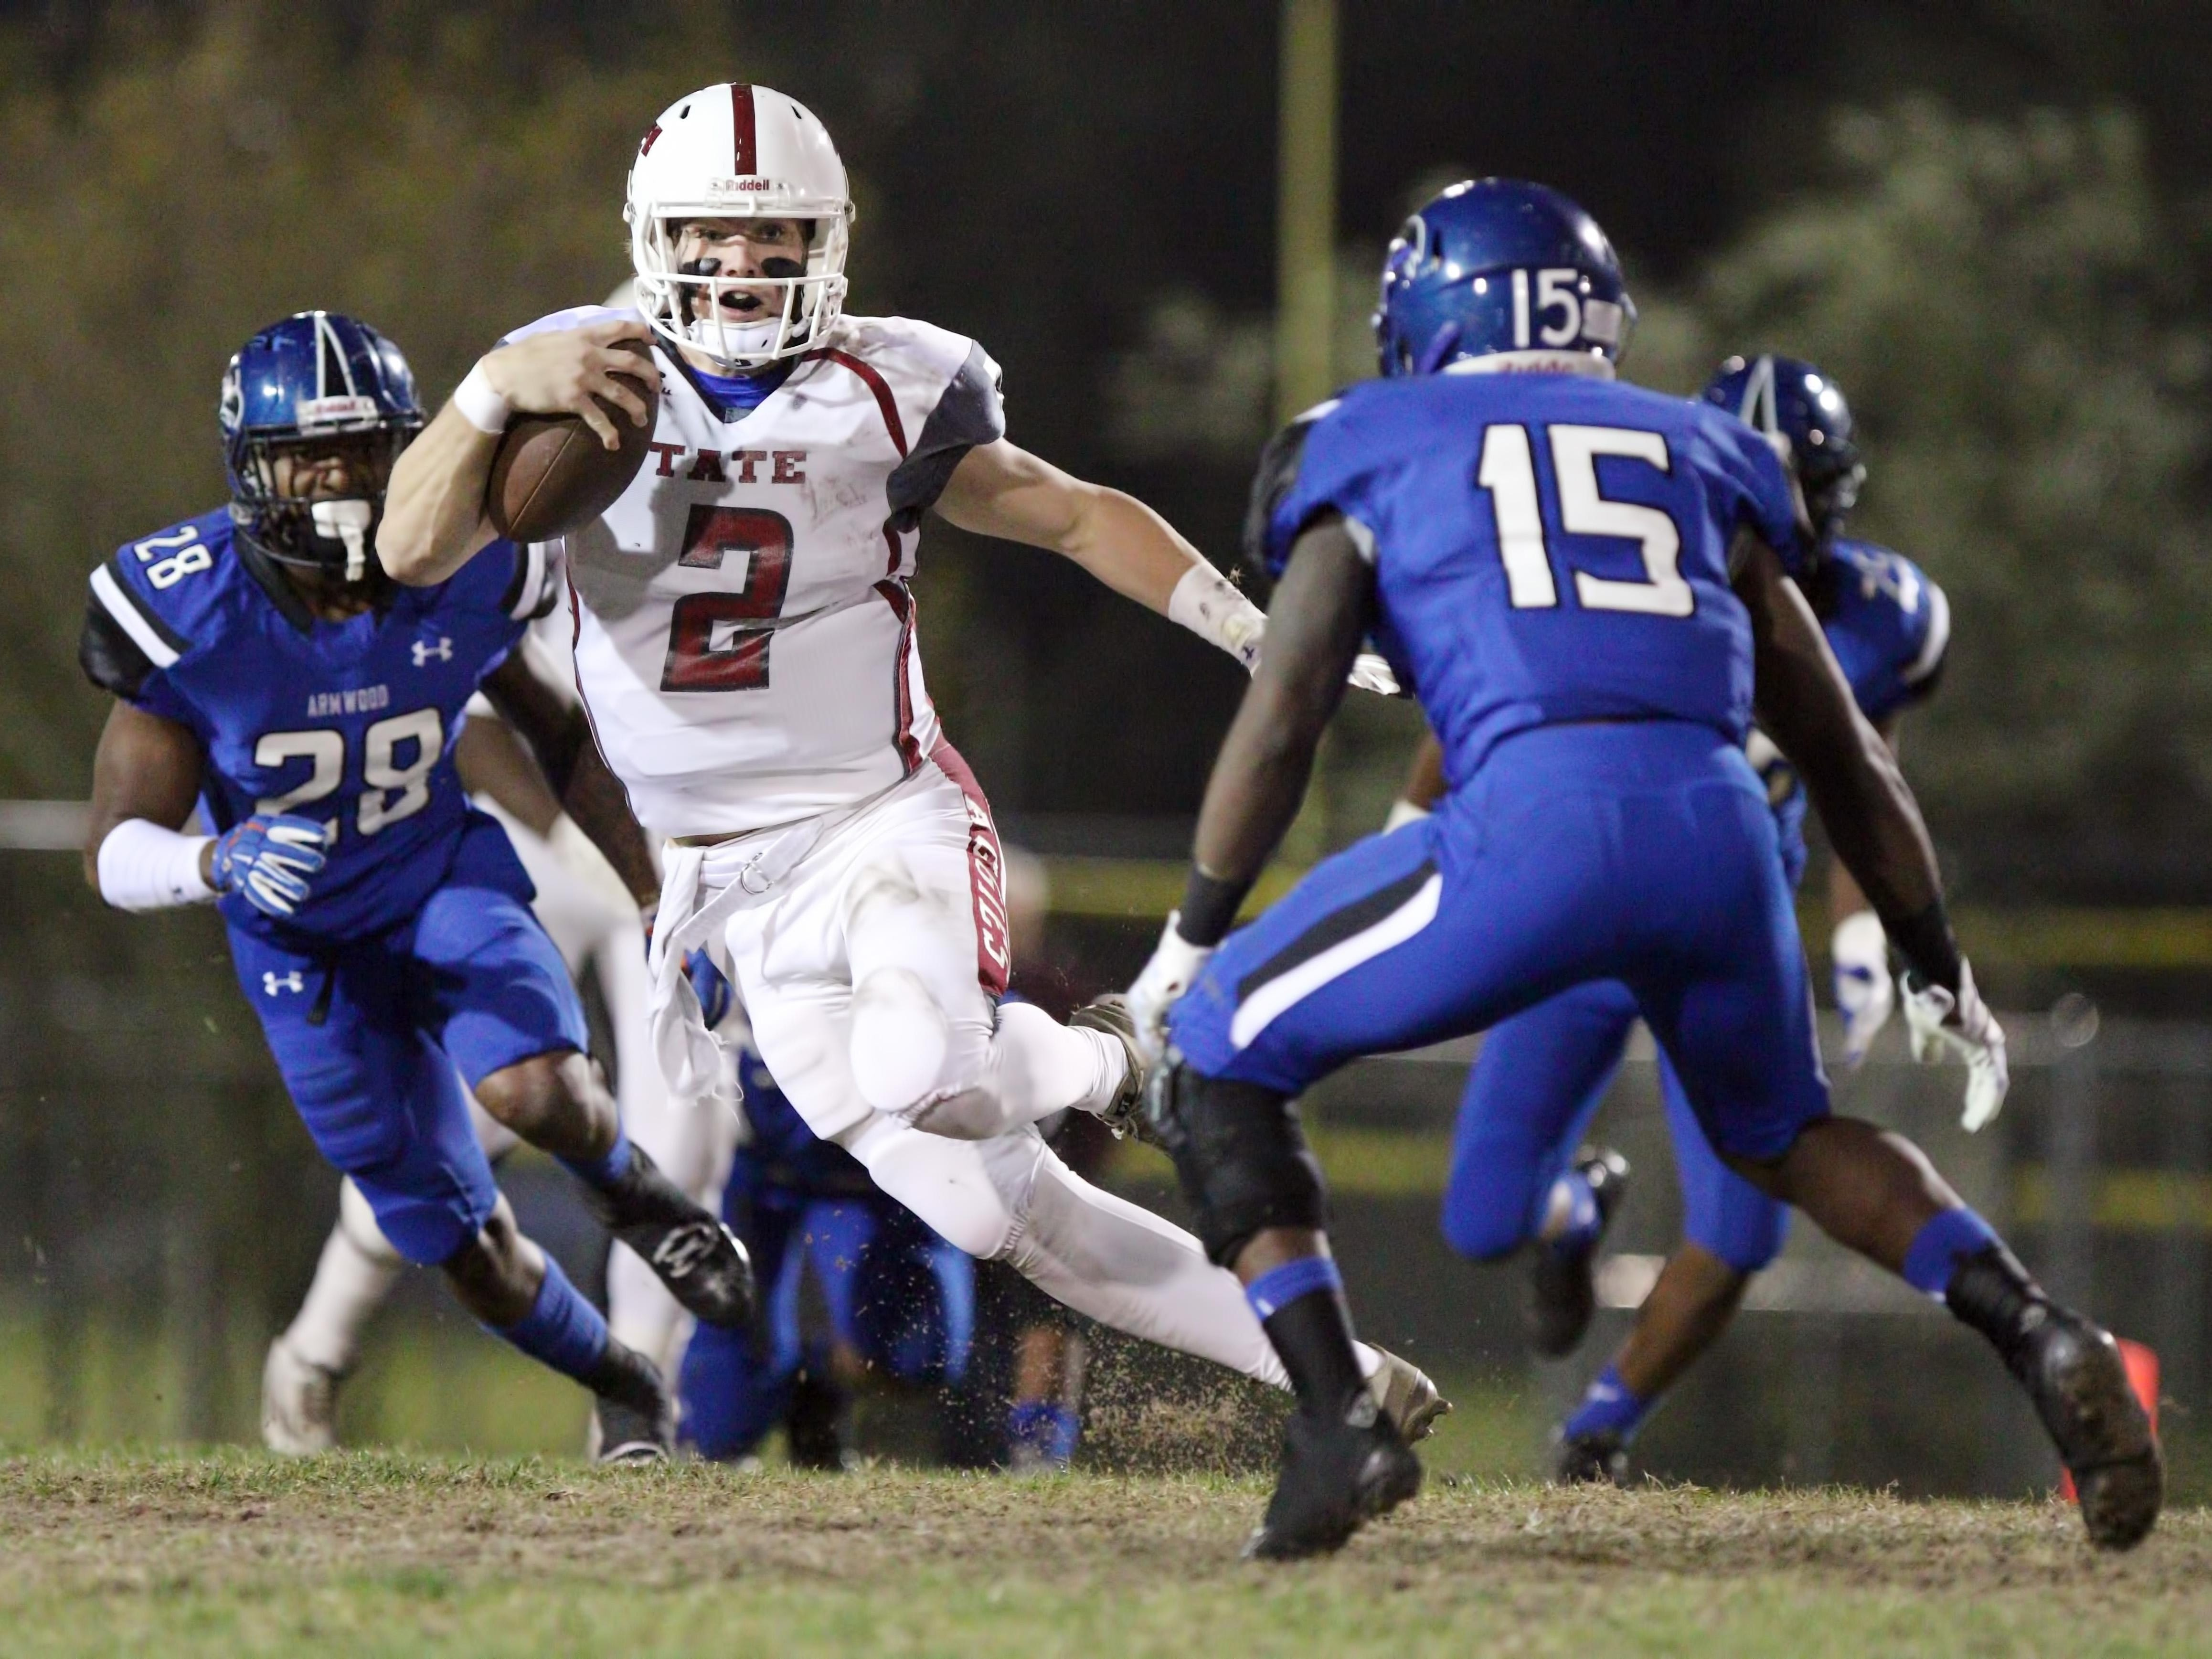 Tate quarterback Sawyer Smith scrambles for yardage against during the first half of action against Armwood in Friday's Class 6A state semigfinal at Lyle Flagg Field. The Aggies fell to the Hawks 53-19.